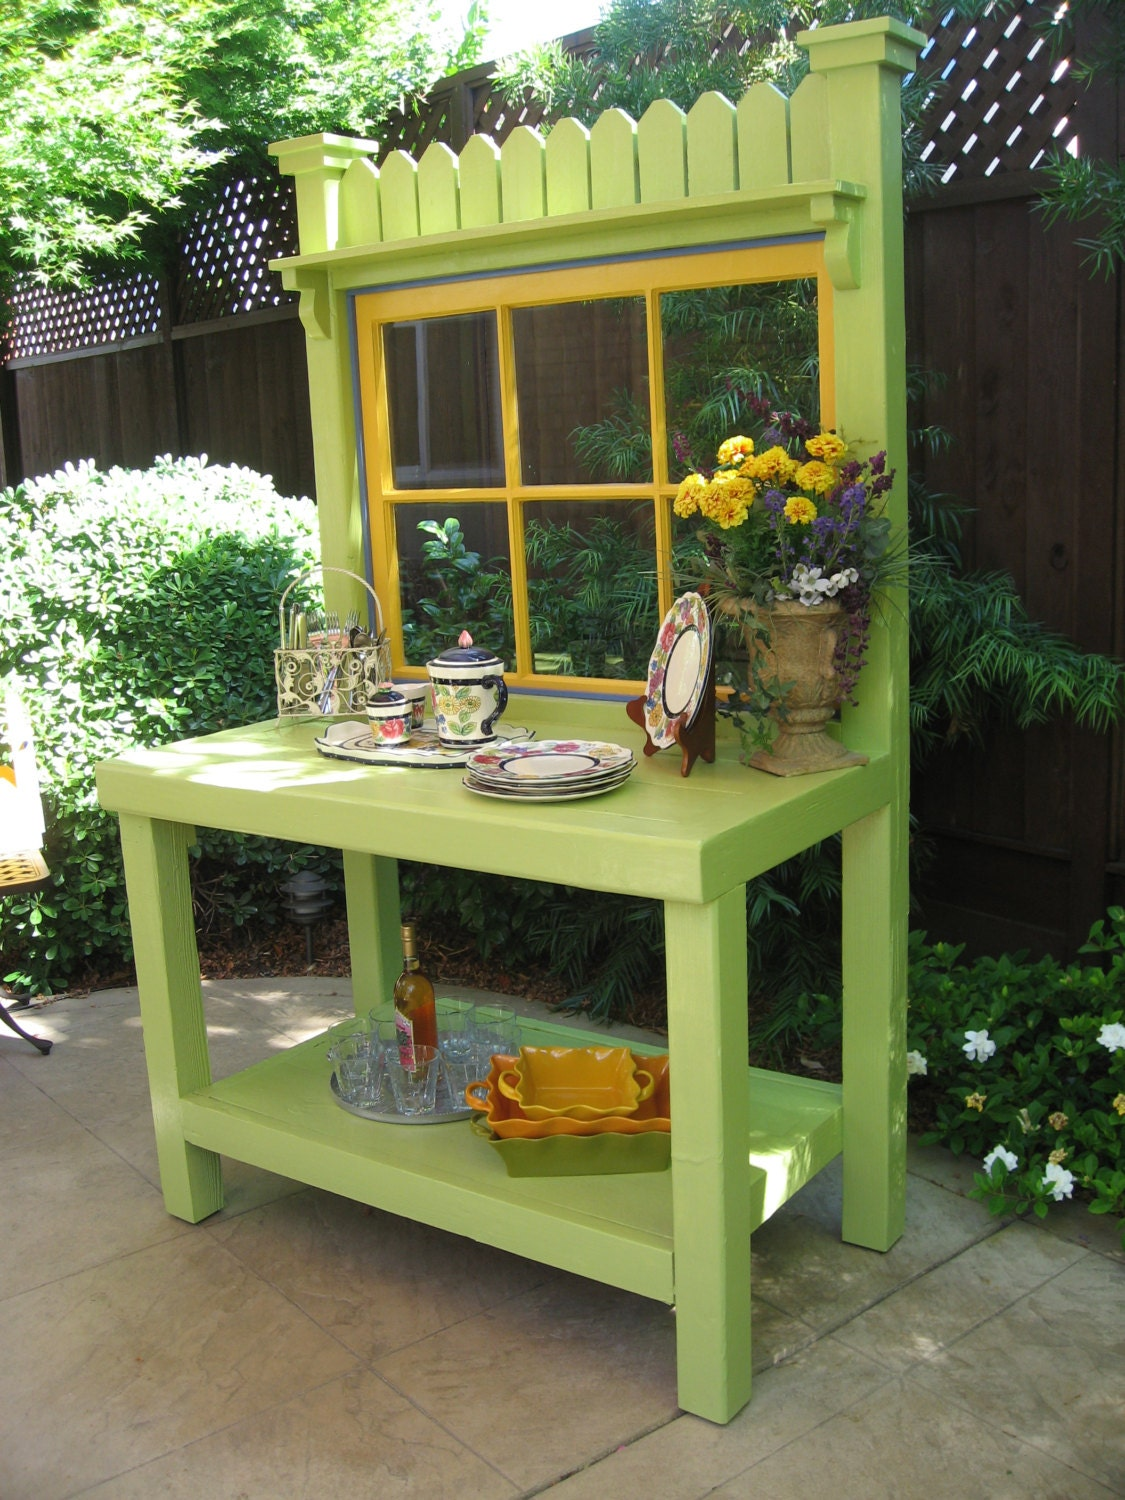 Green Potting Bench with Vintage Window